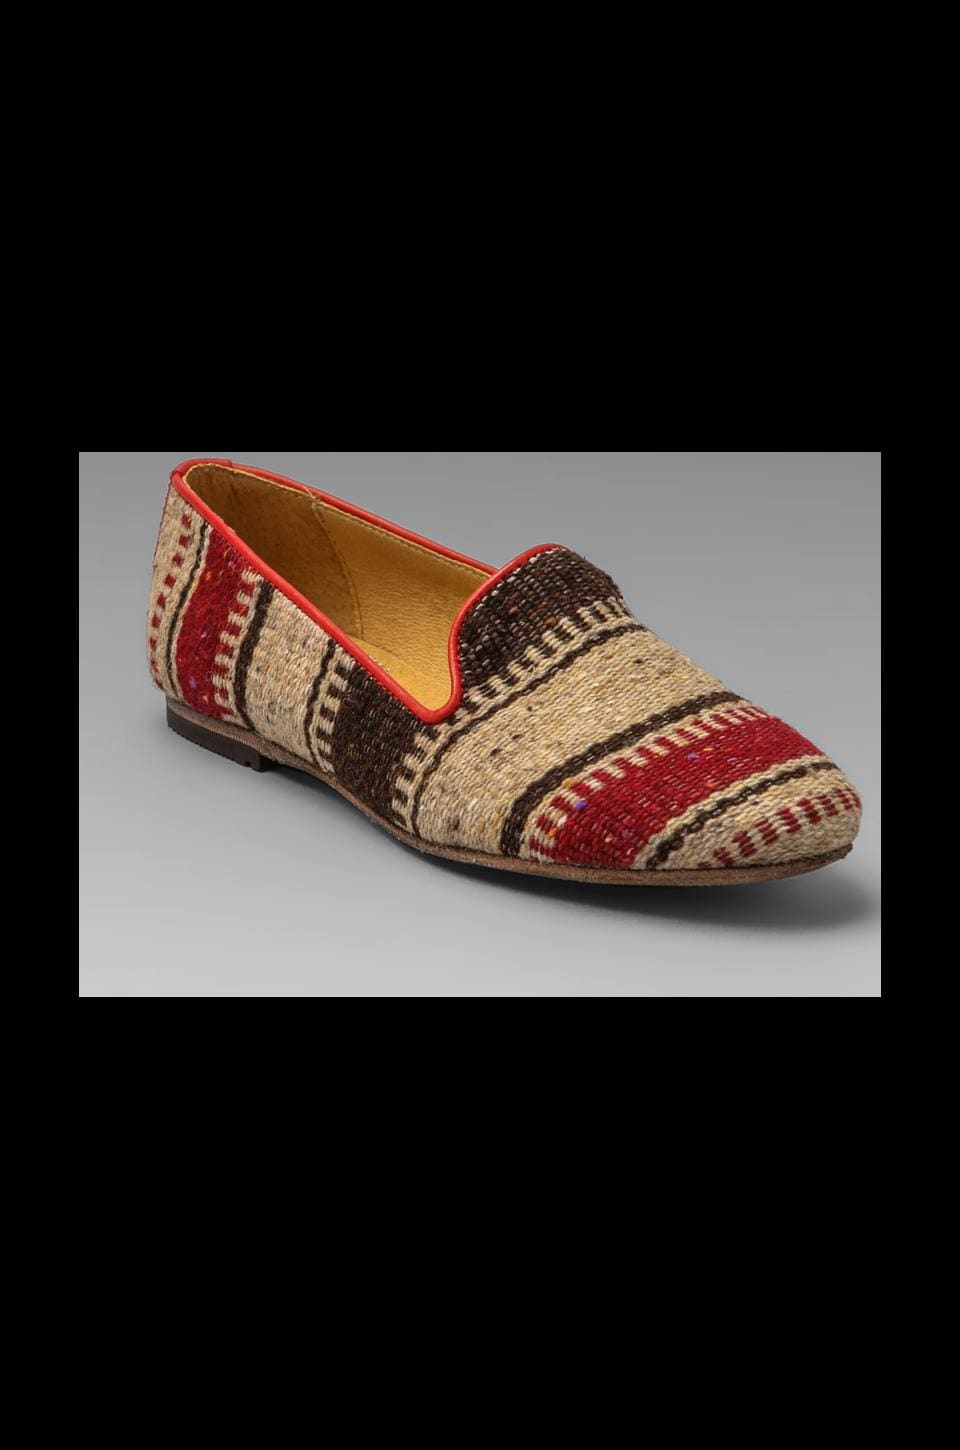 H by Hudson Bolero Fabric Loafer in Red Multi